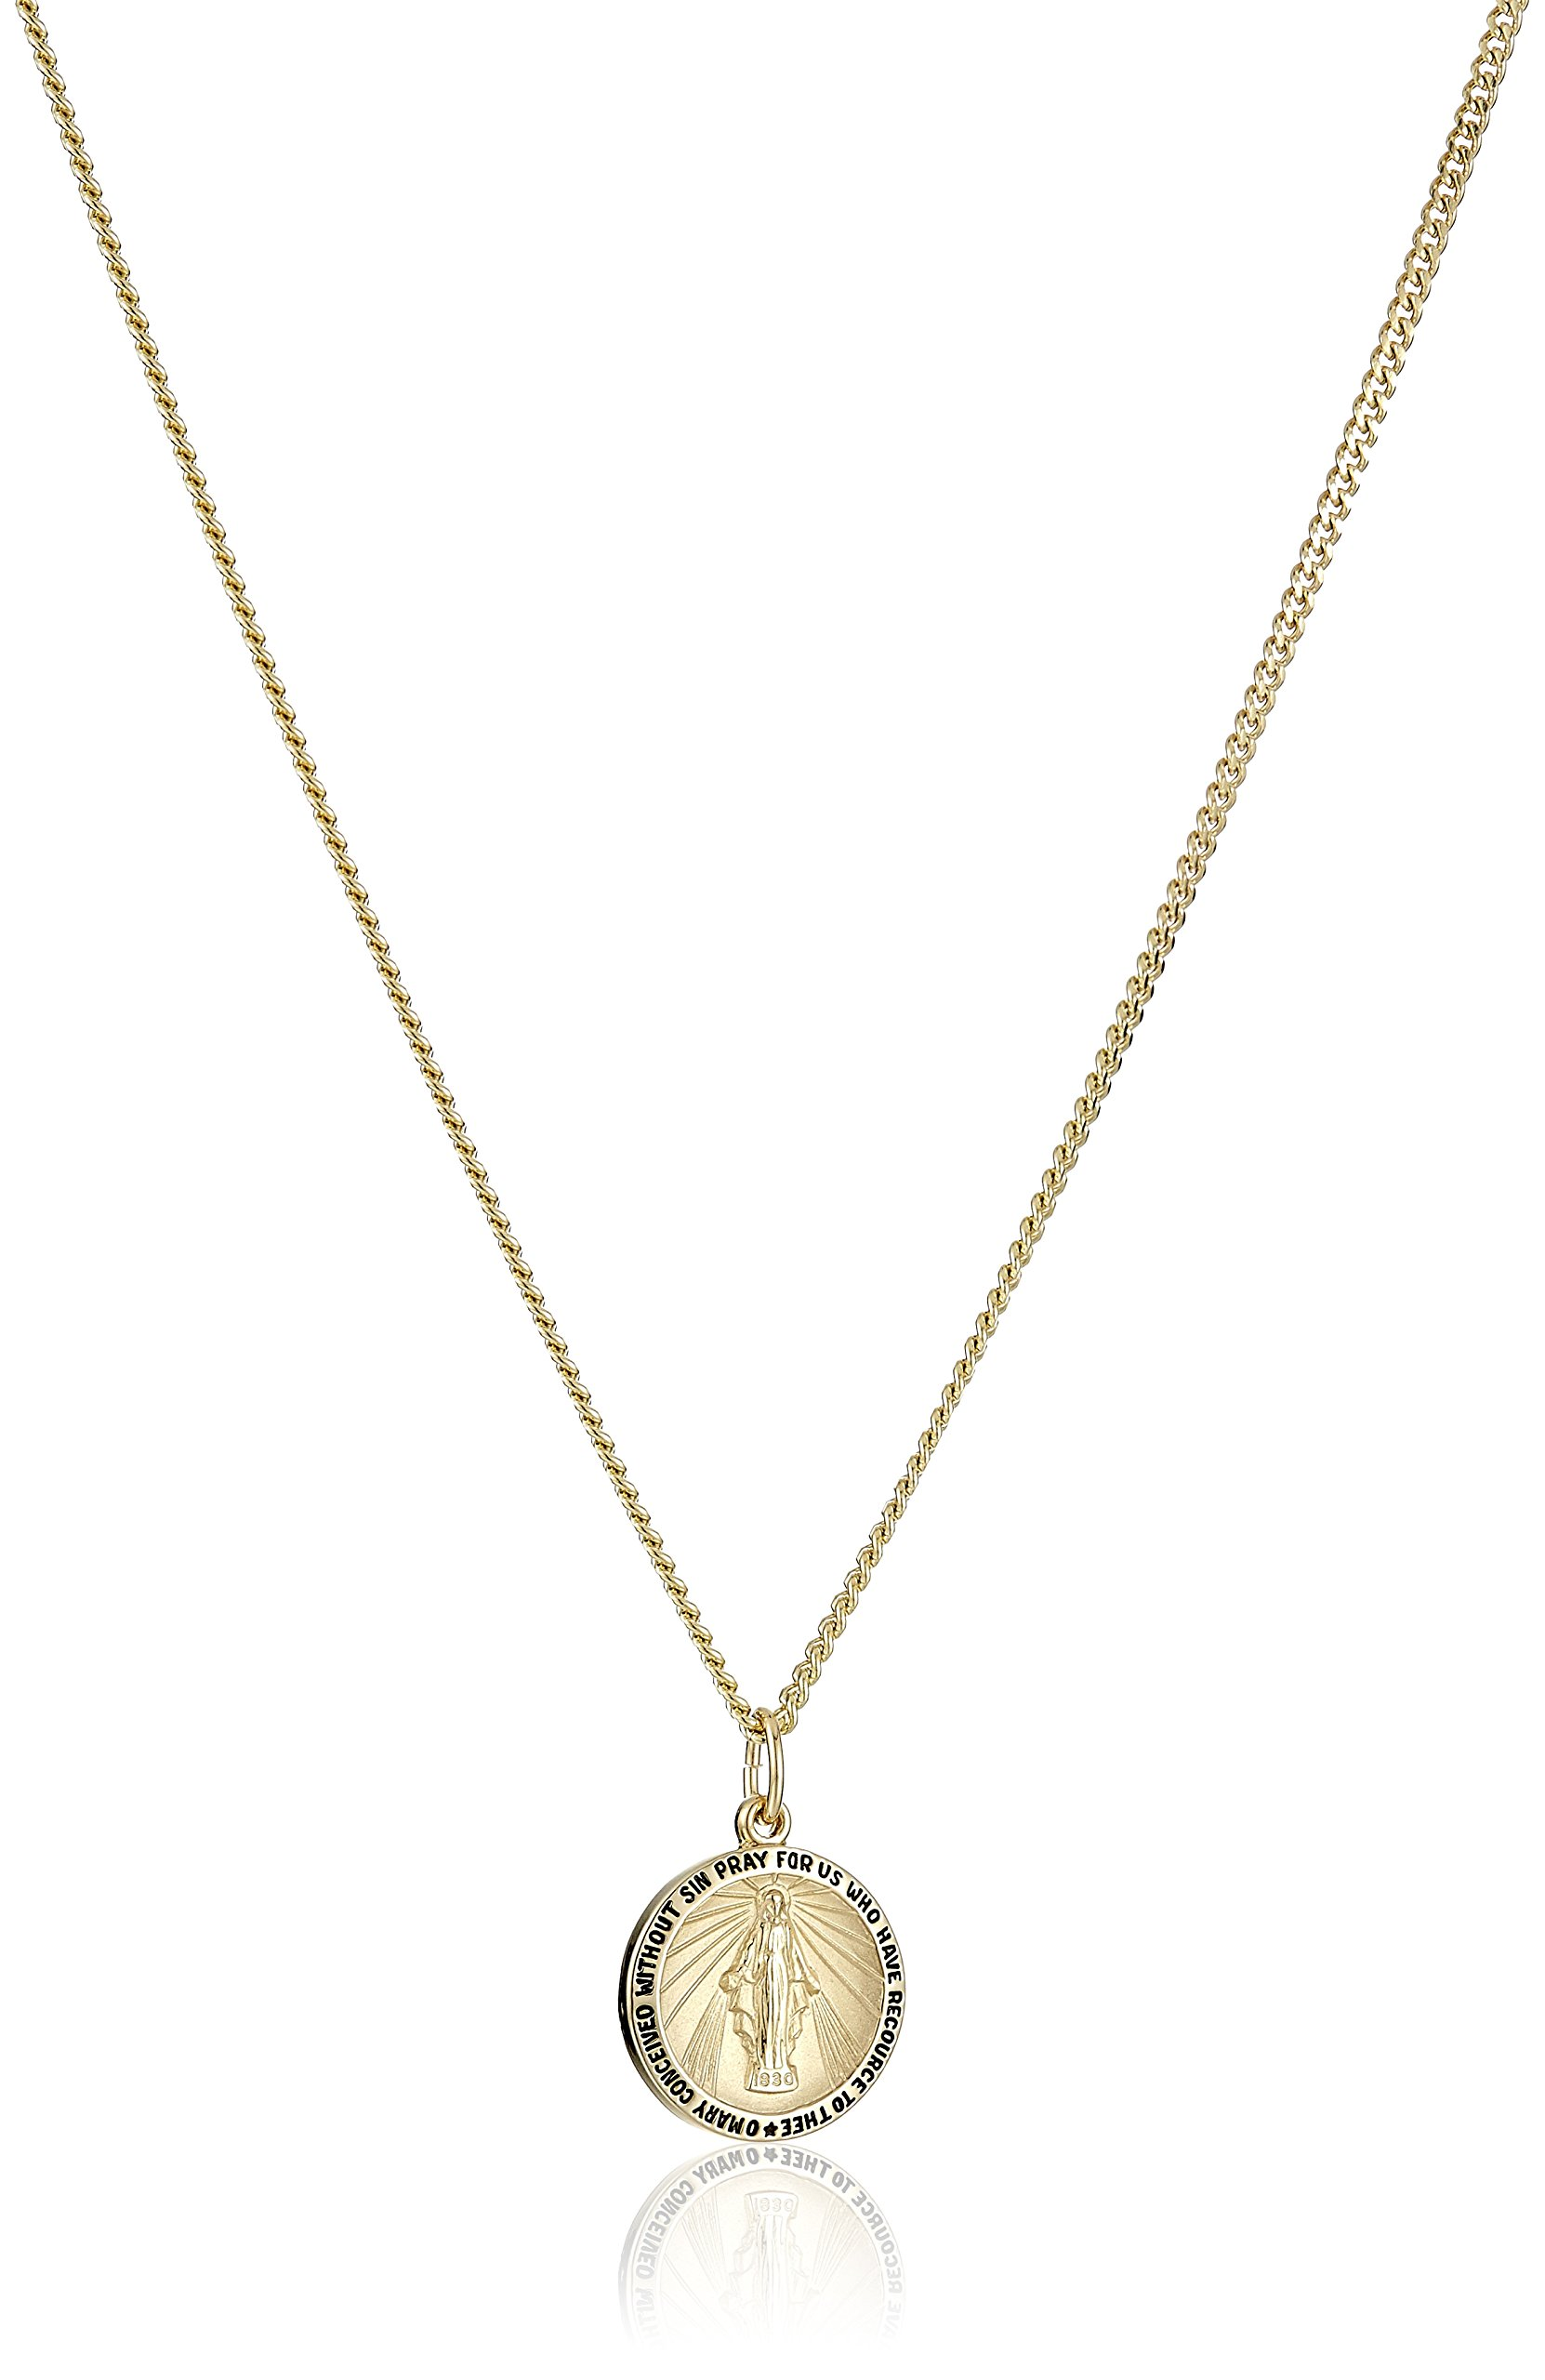 14k Gold-Filled Round Miraculous Medal Madonna Pendant Necklace with Stainless Steel Chain, 20''